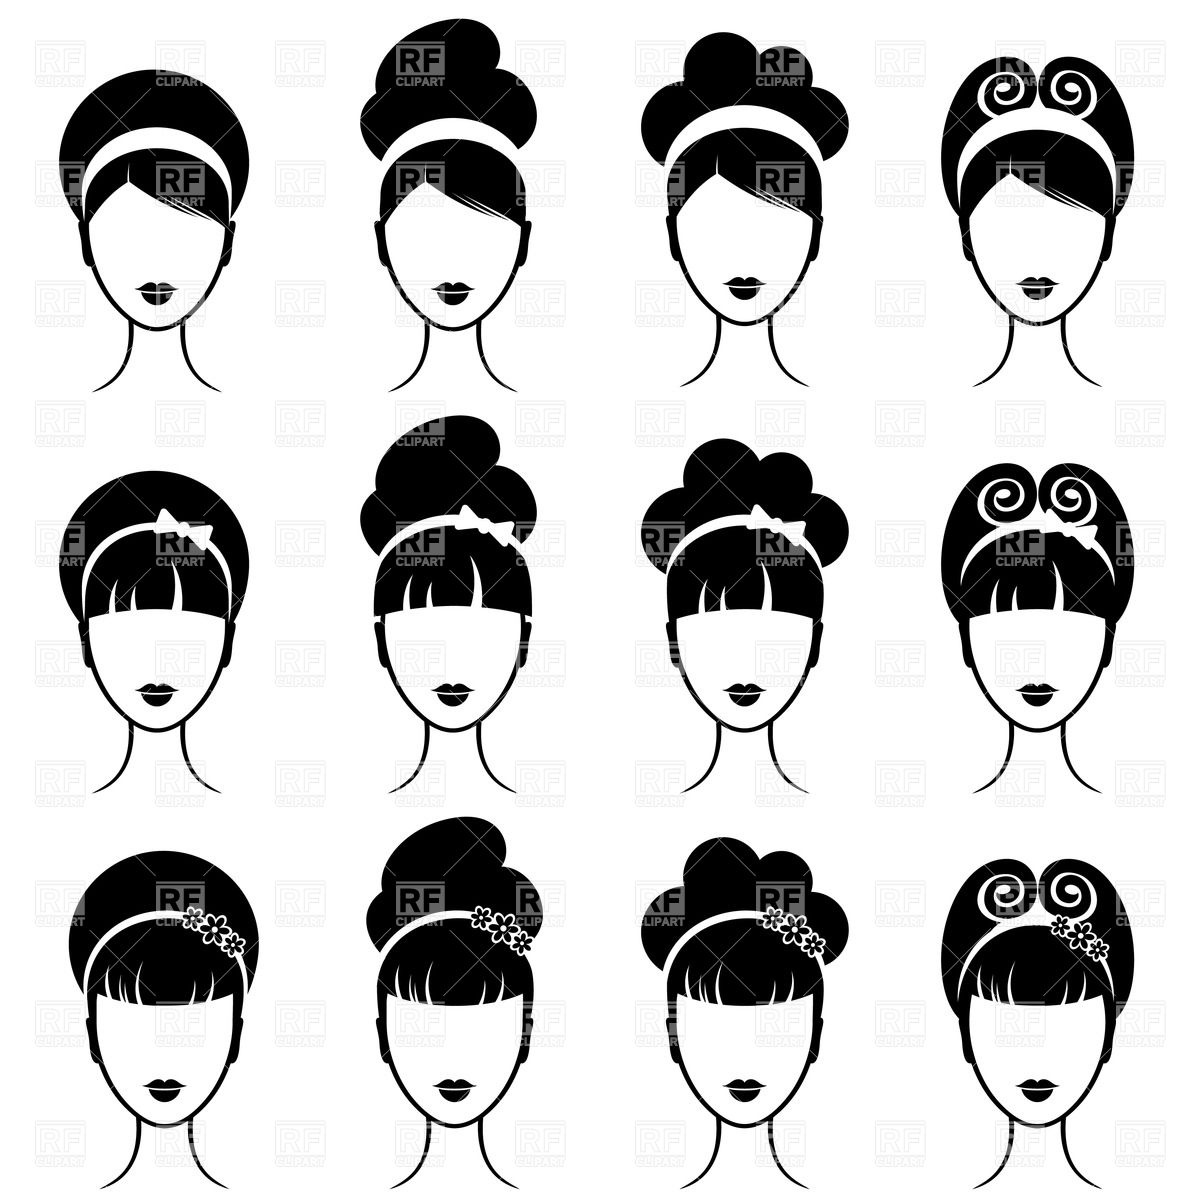 Photos clipart hairstyle #8